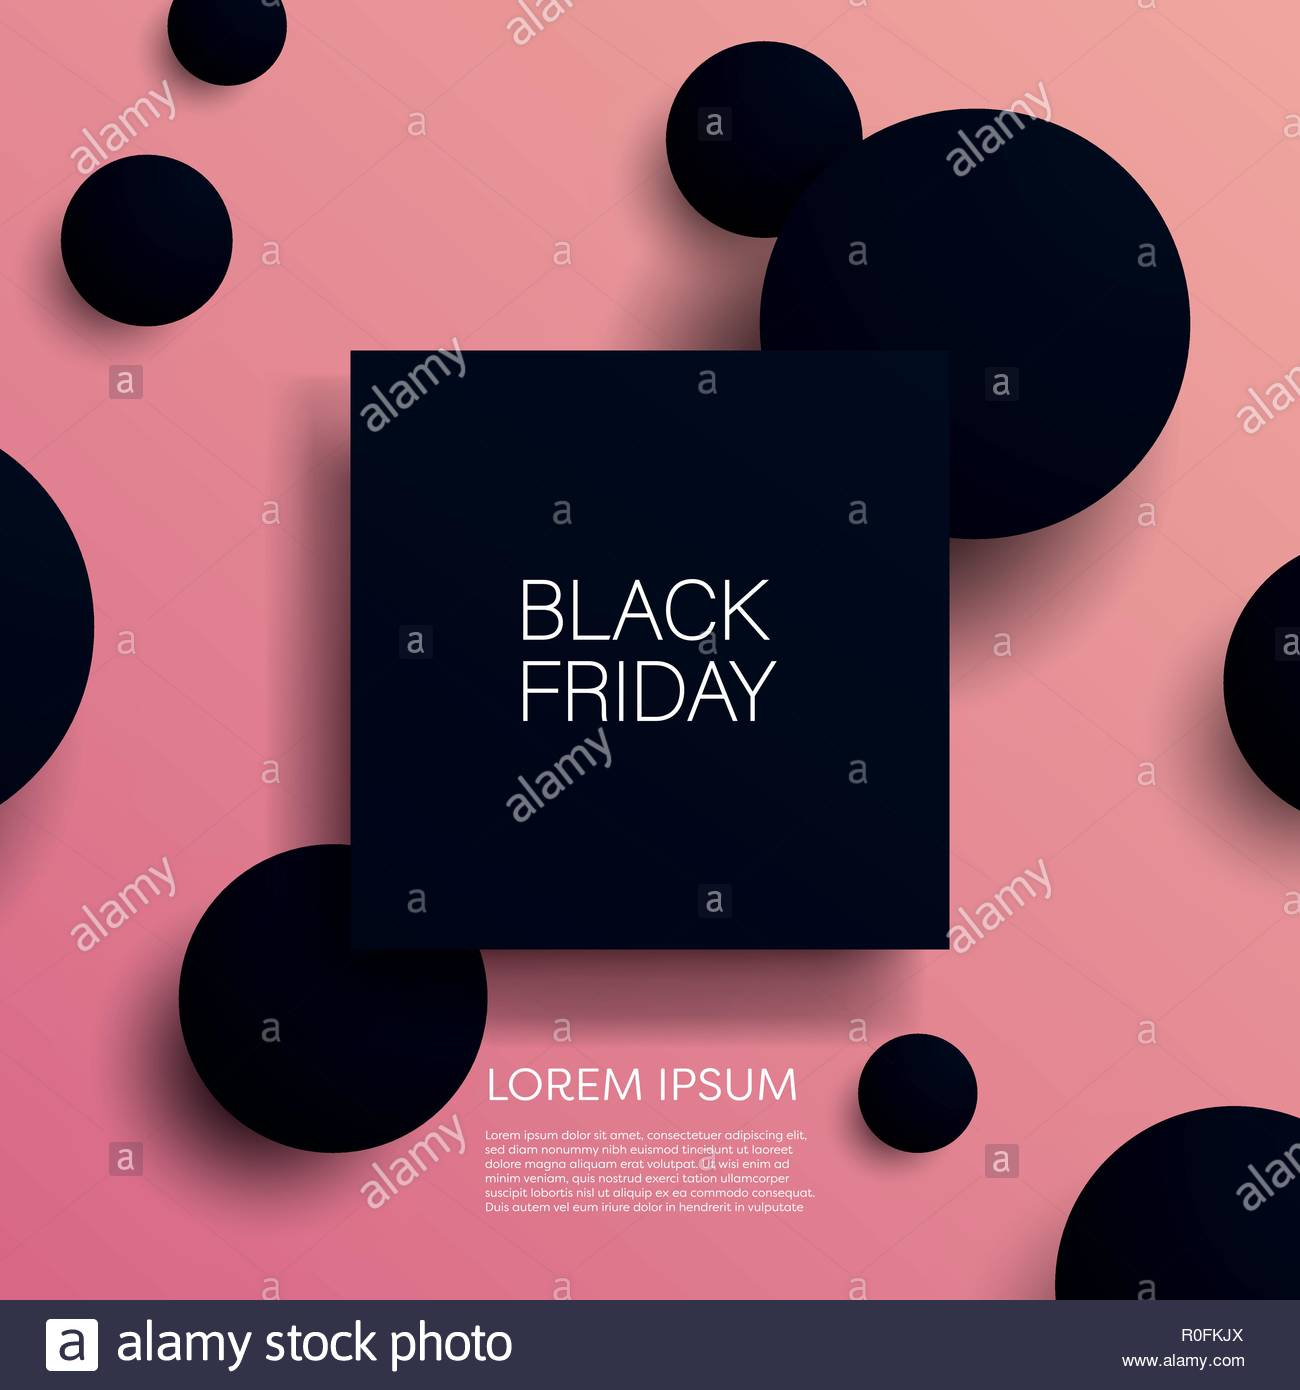 1d20c8a609 Black friday sale 3d vector illustration banner template with black objects  on pink background. Sales promotion